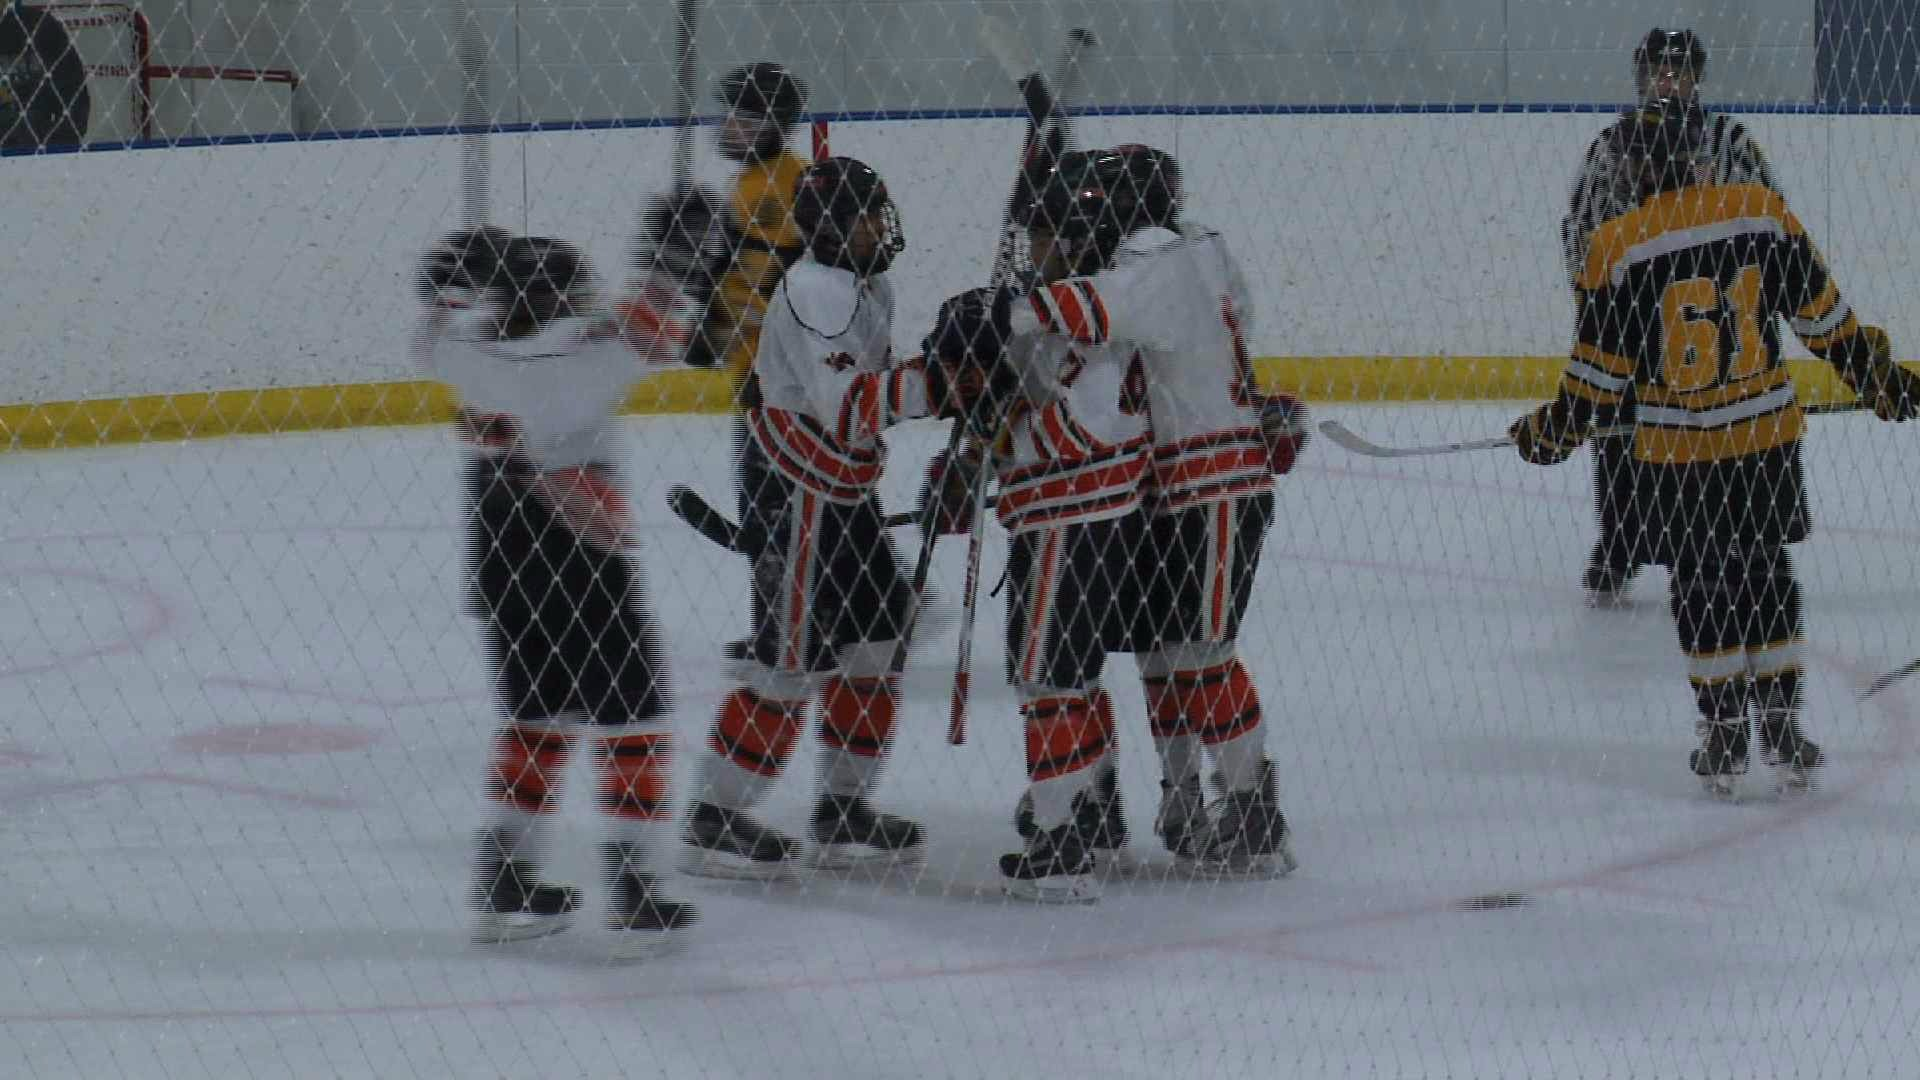 Tenafly vs. West Milford ice hockey video highlights